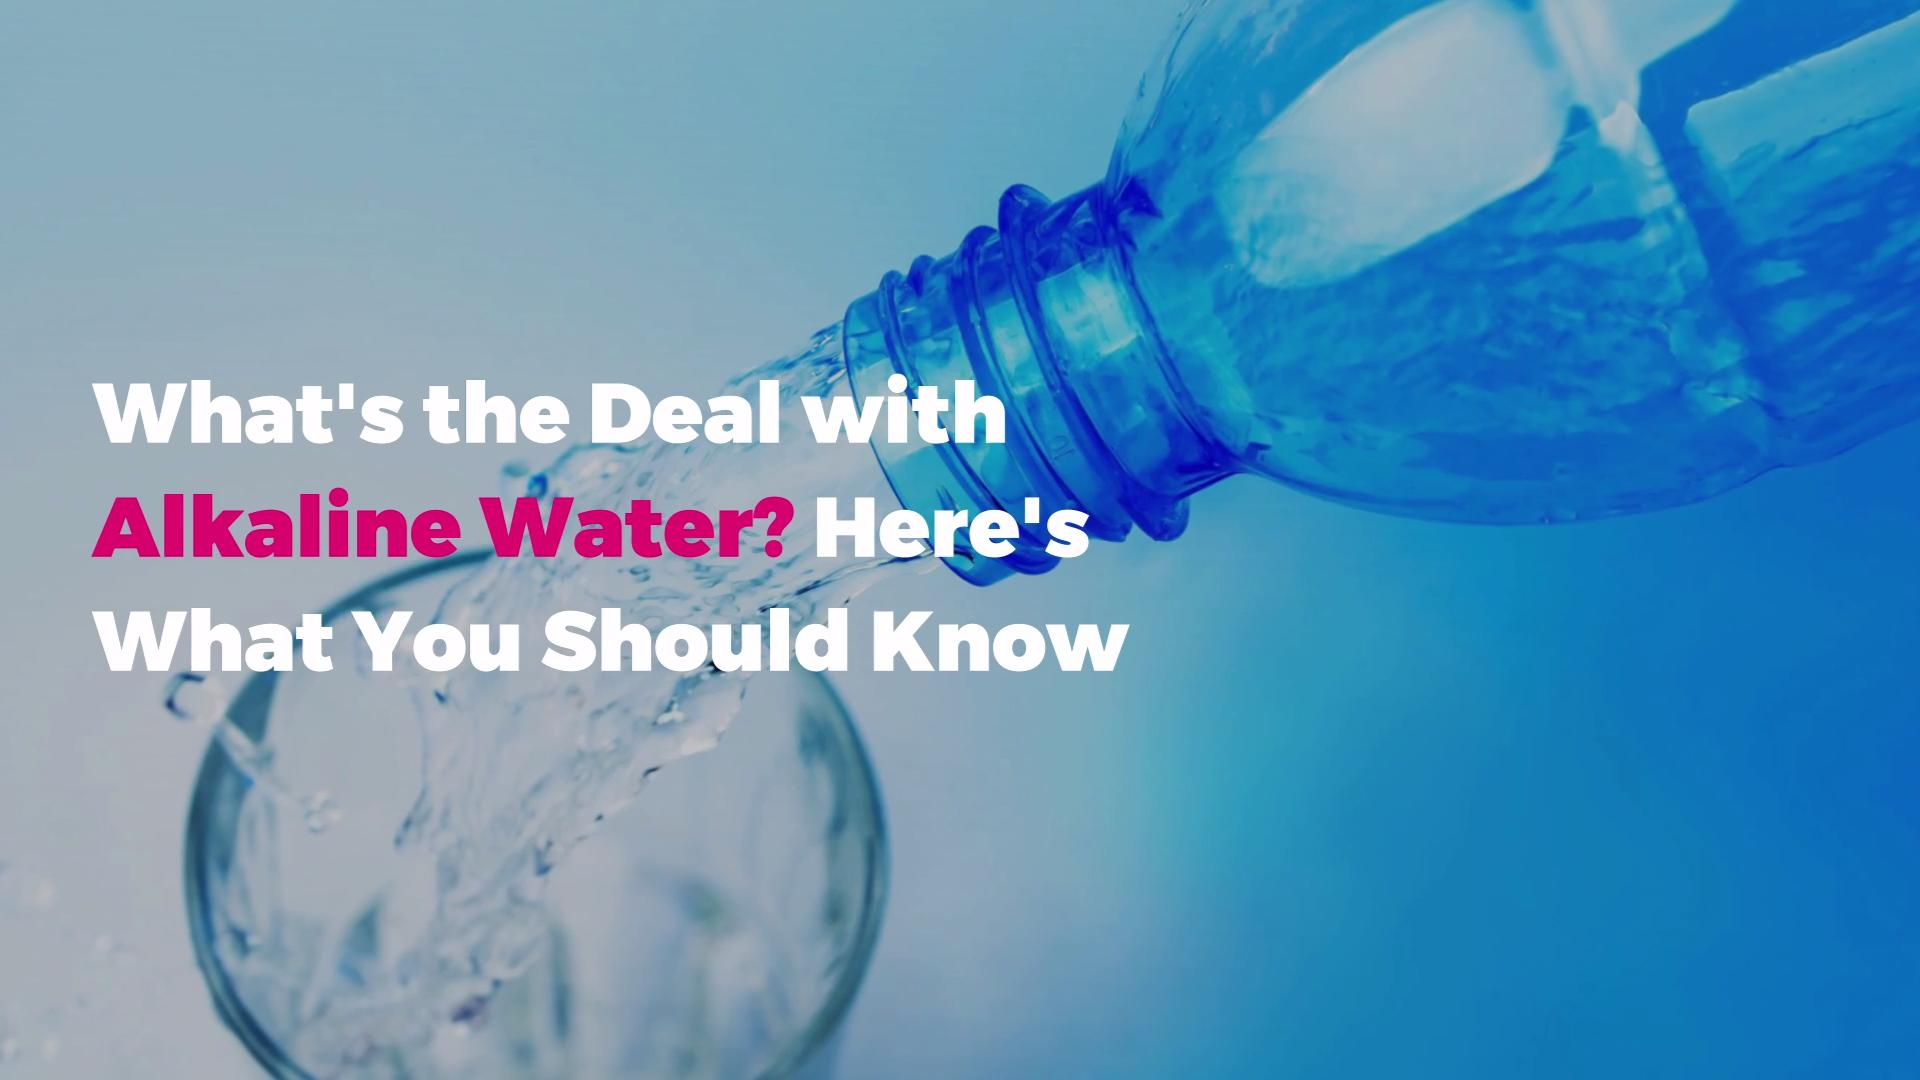 What's the Deal with Alkaline Water? Here's What You Should Know